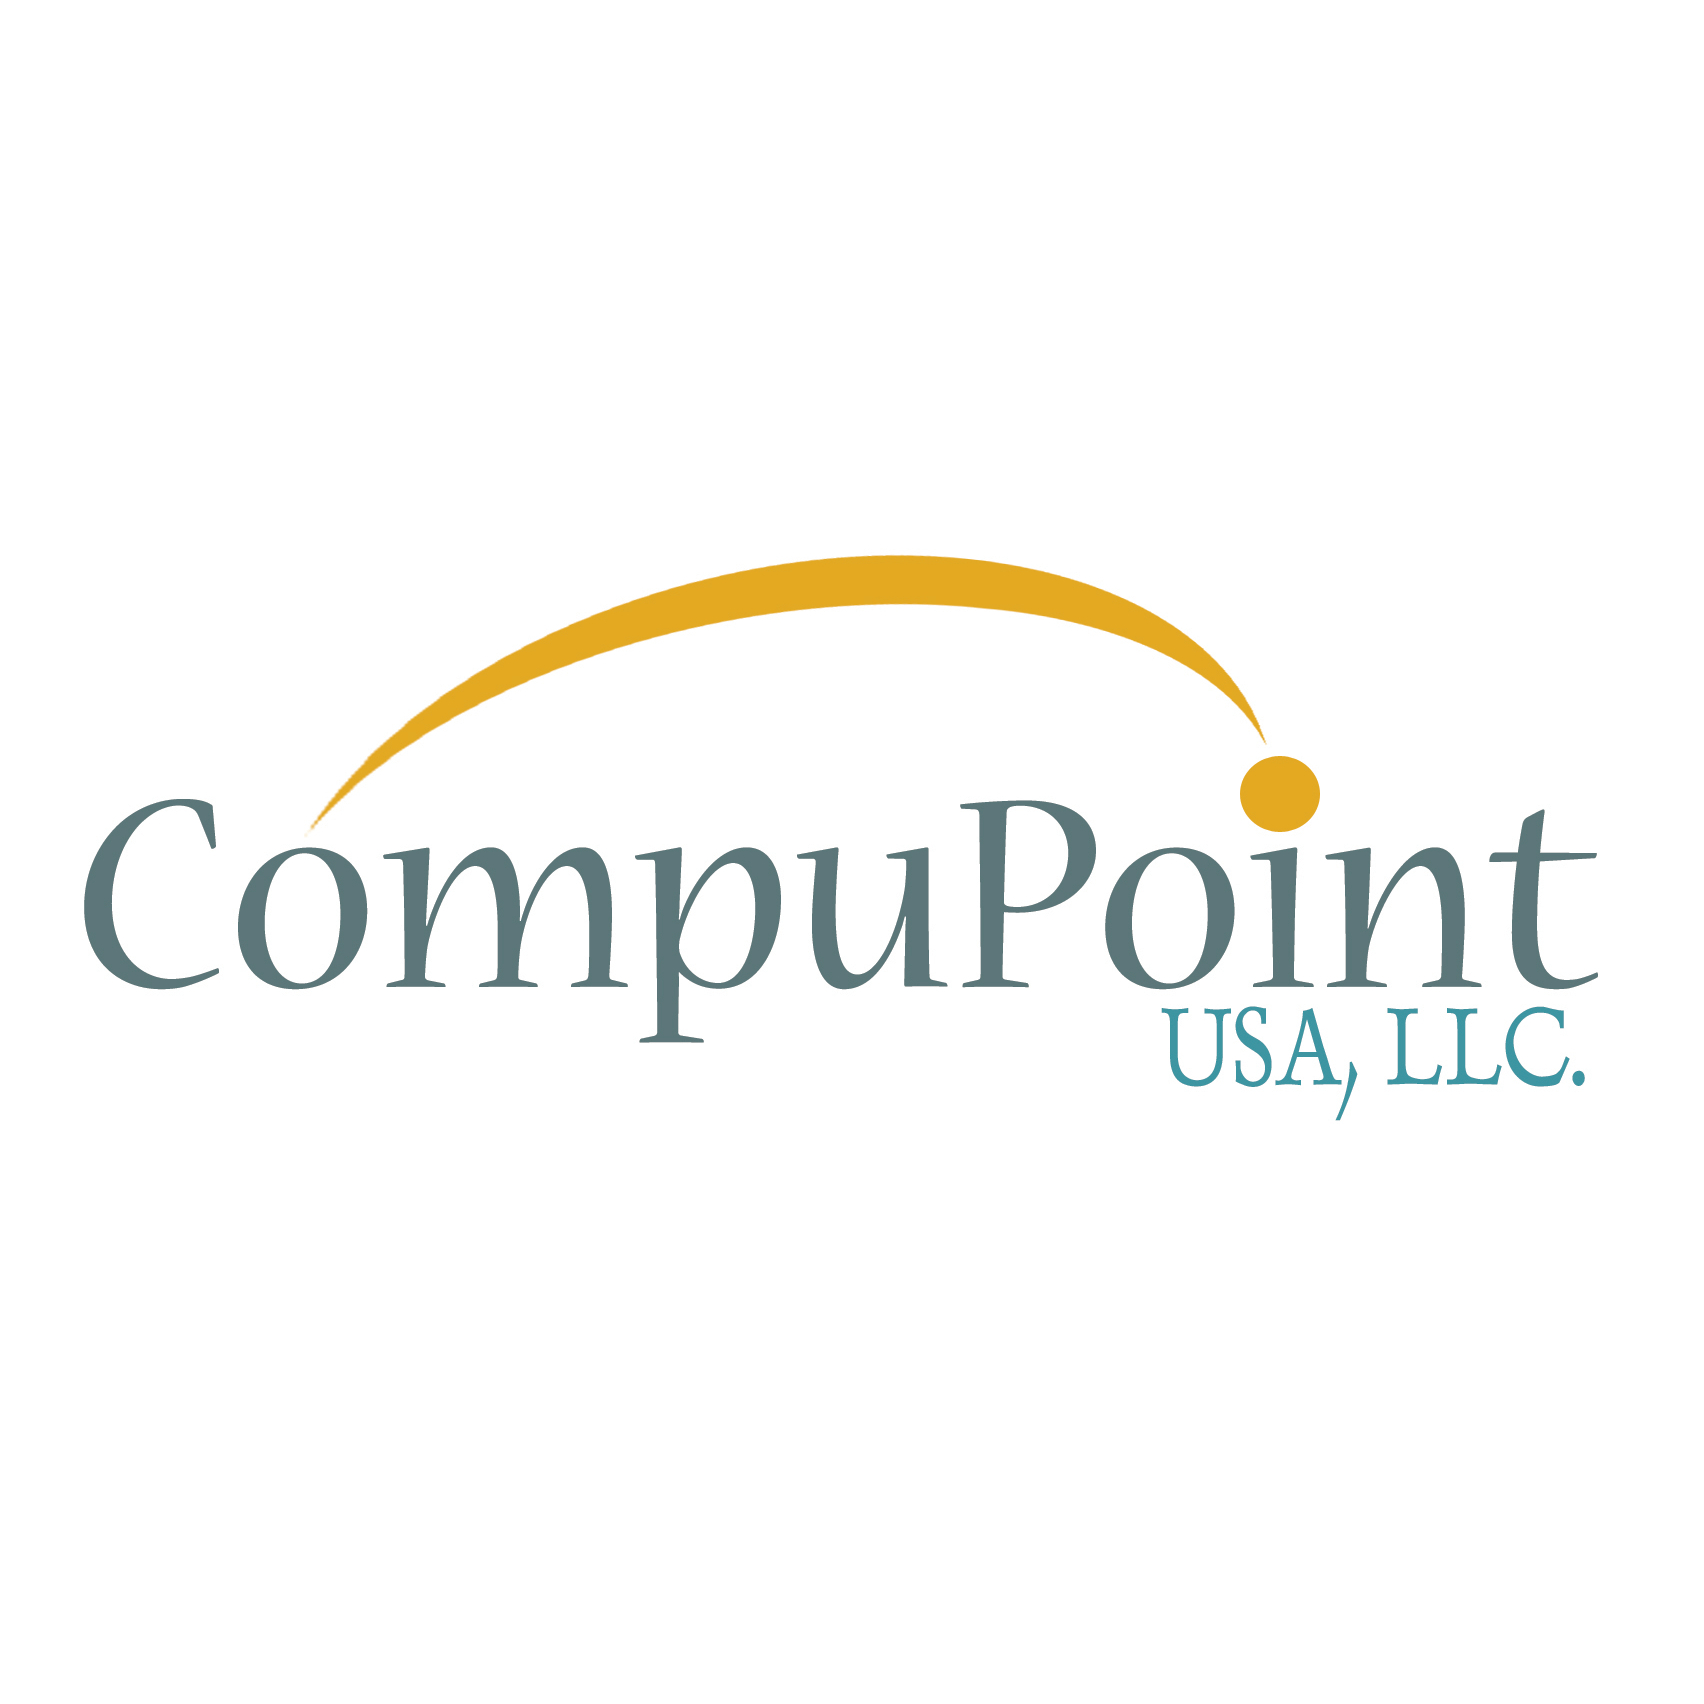 CompuPoint USA LLC